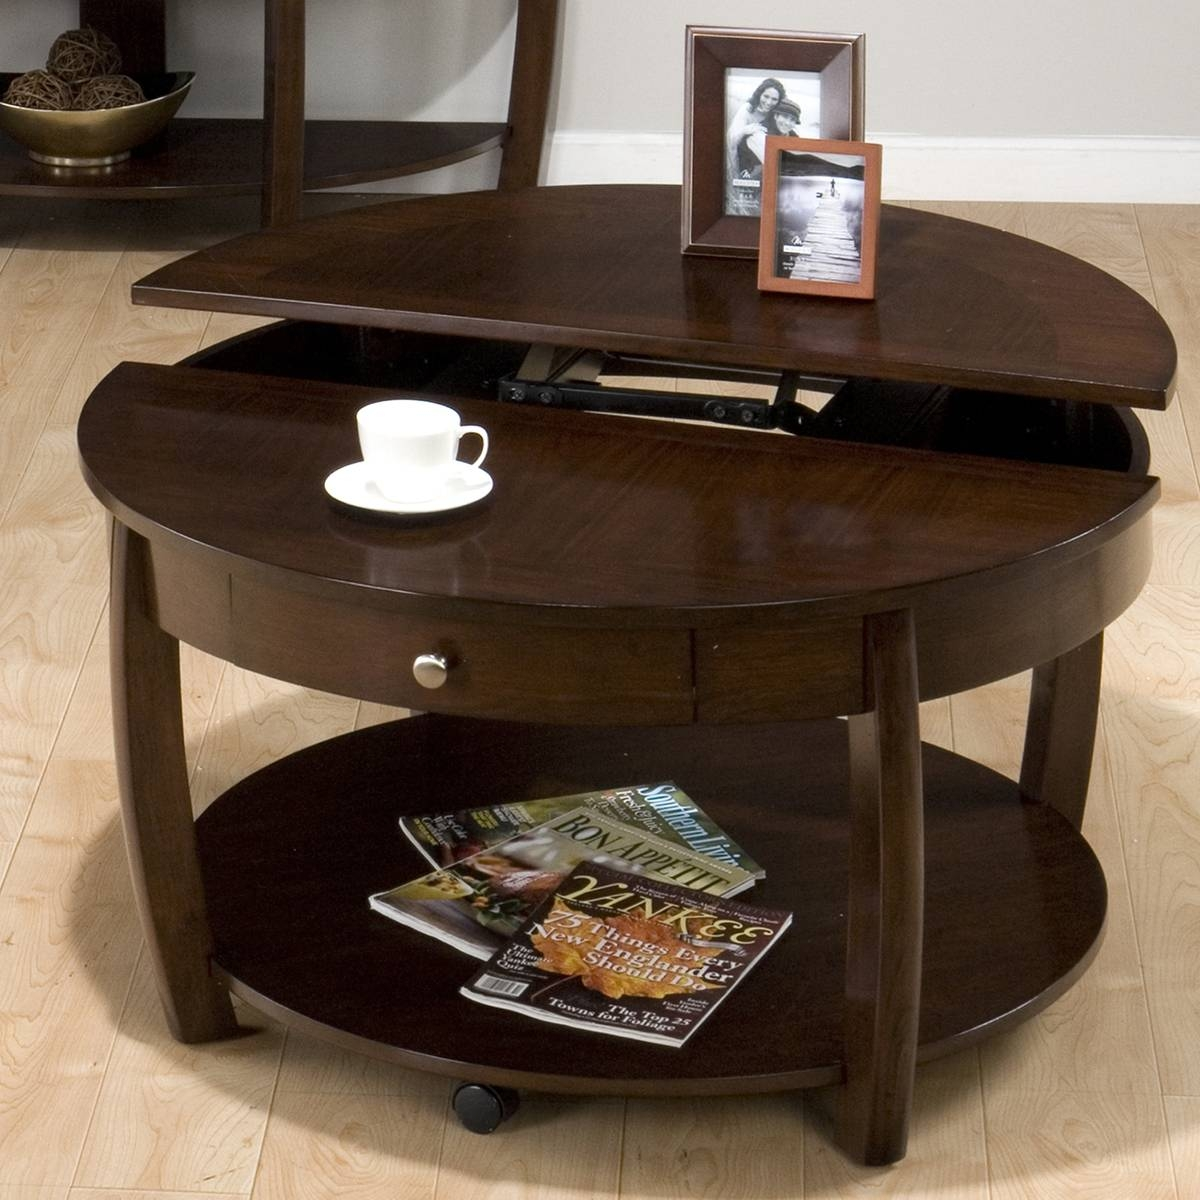 The Round Coffee Tables With Storage – The Simple And Compact inside Round Storage Coffee Tables (Image 30 of 30)